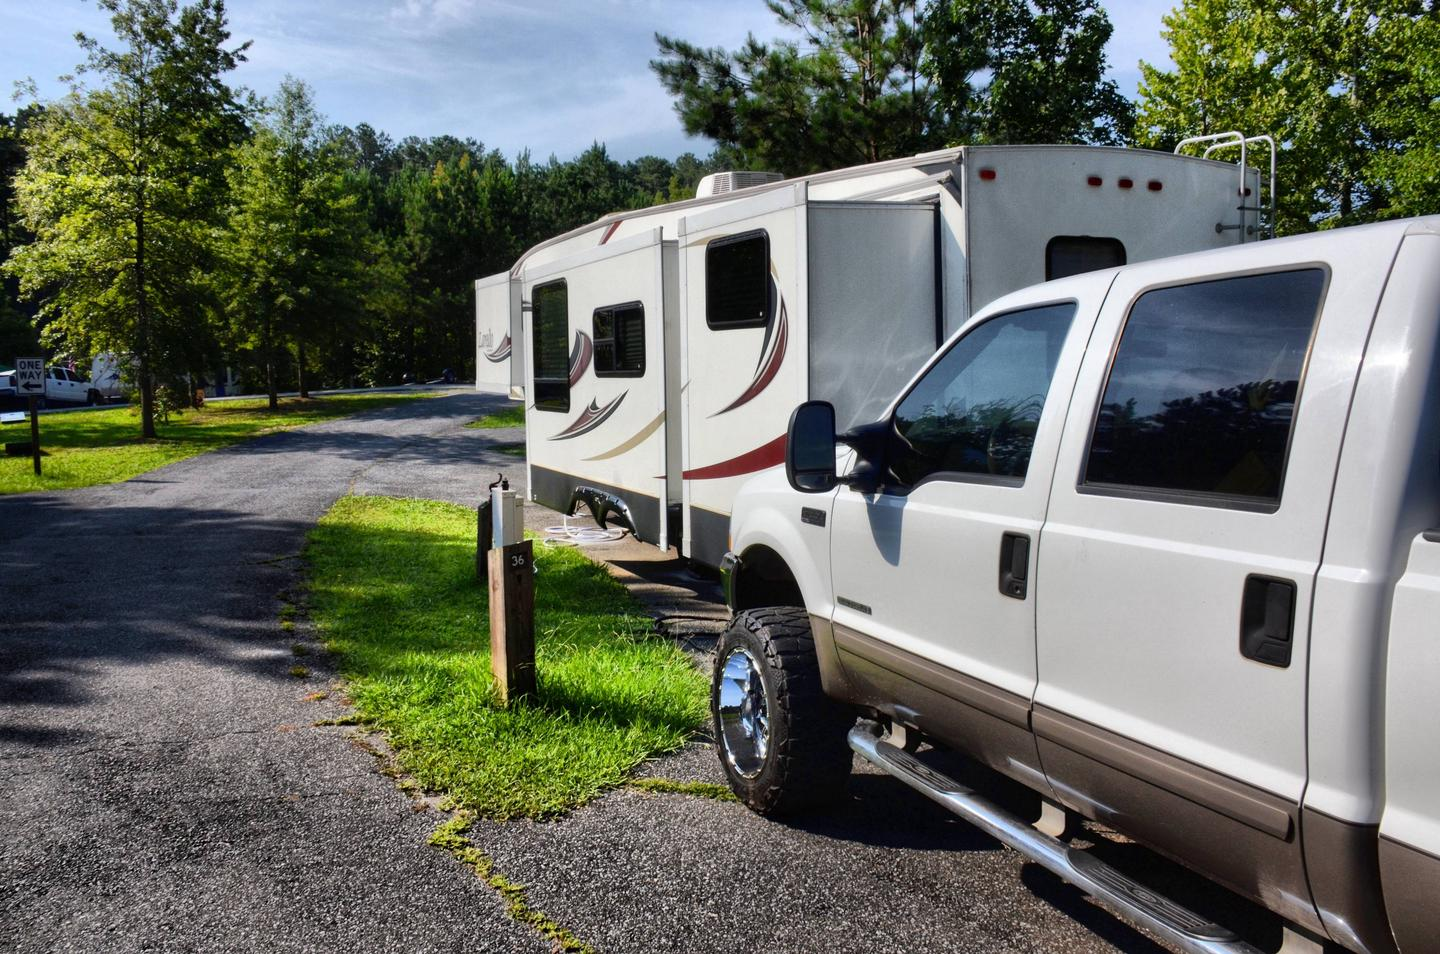 Pull-thru entrance, utilities clearance.Payne Campground, campsite 36.